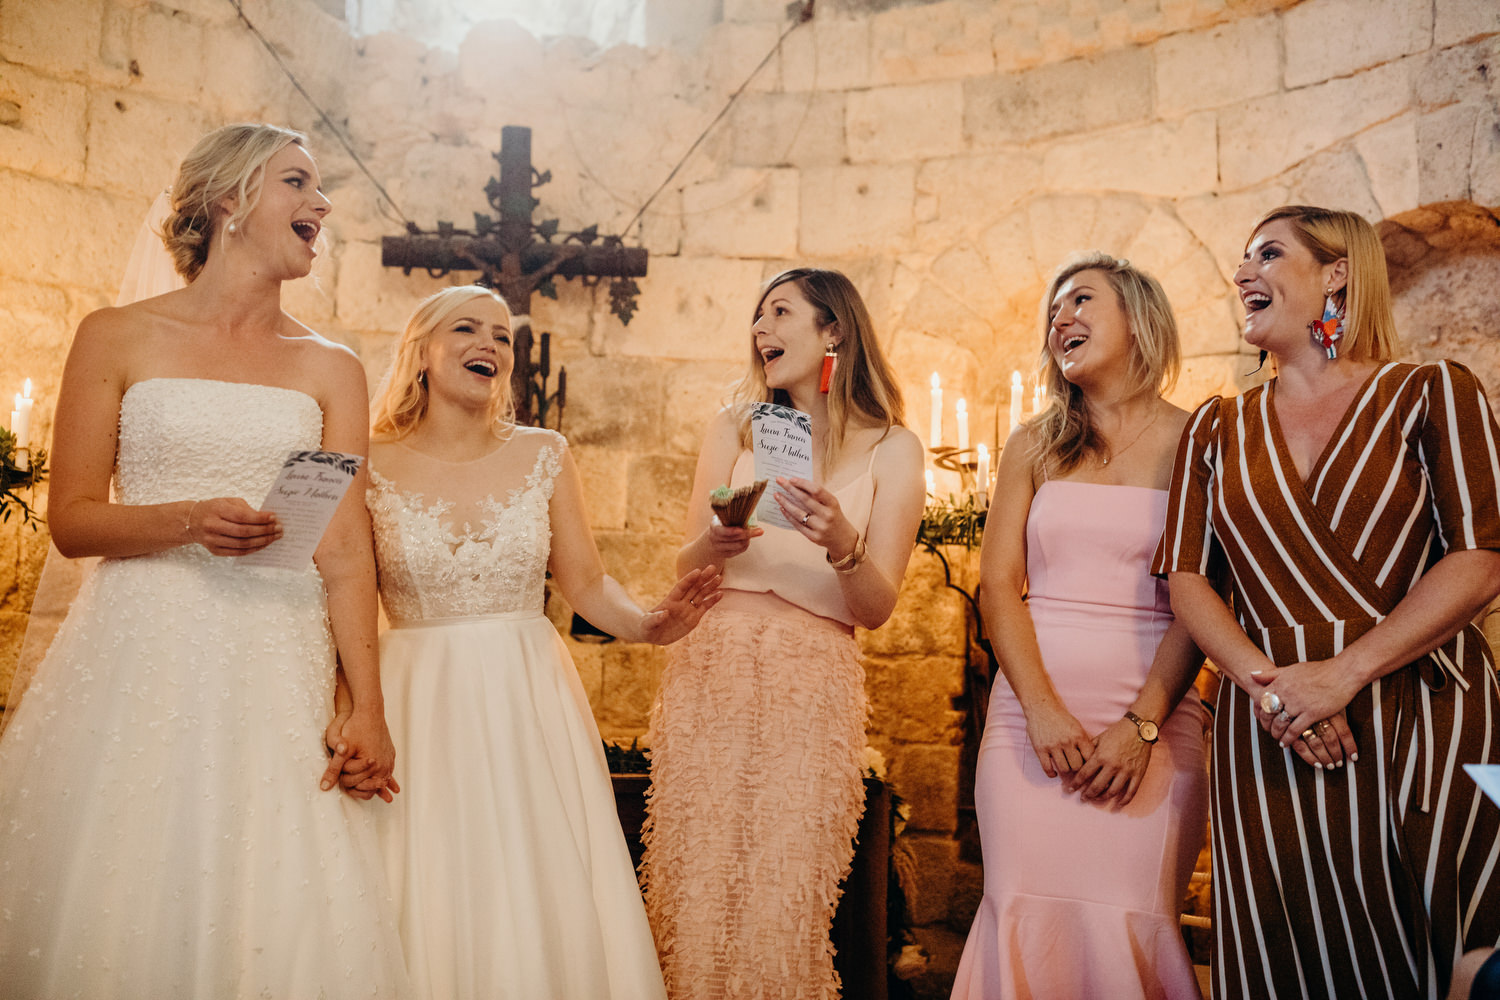 brides and friends sing during ceremony